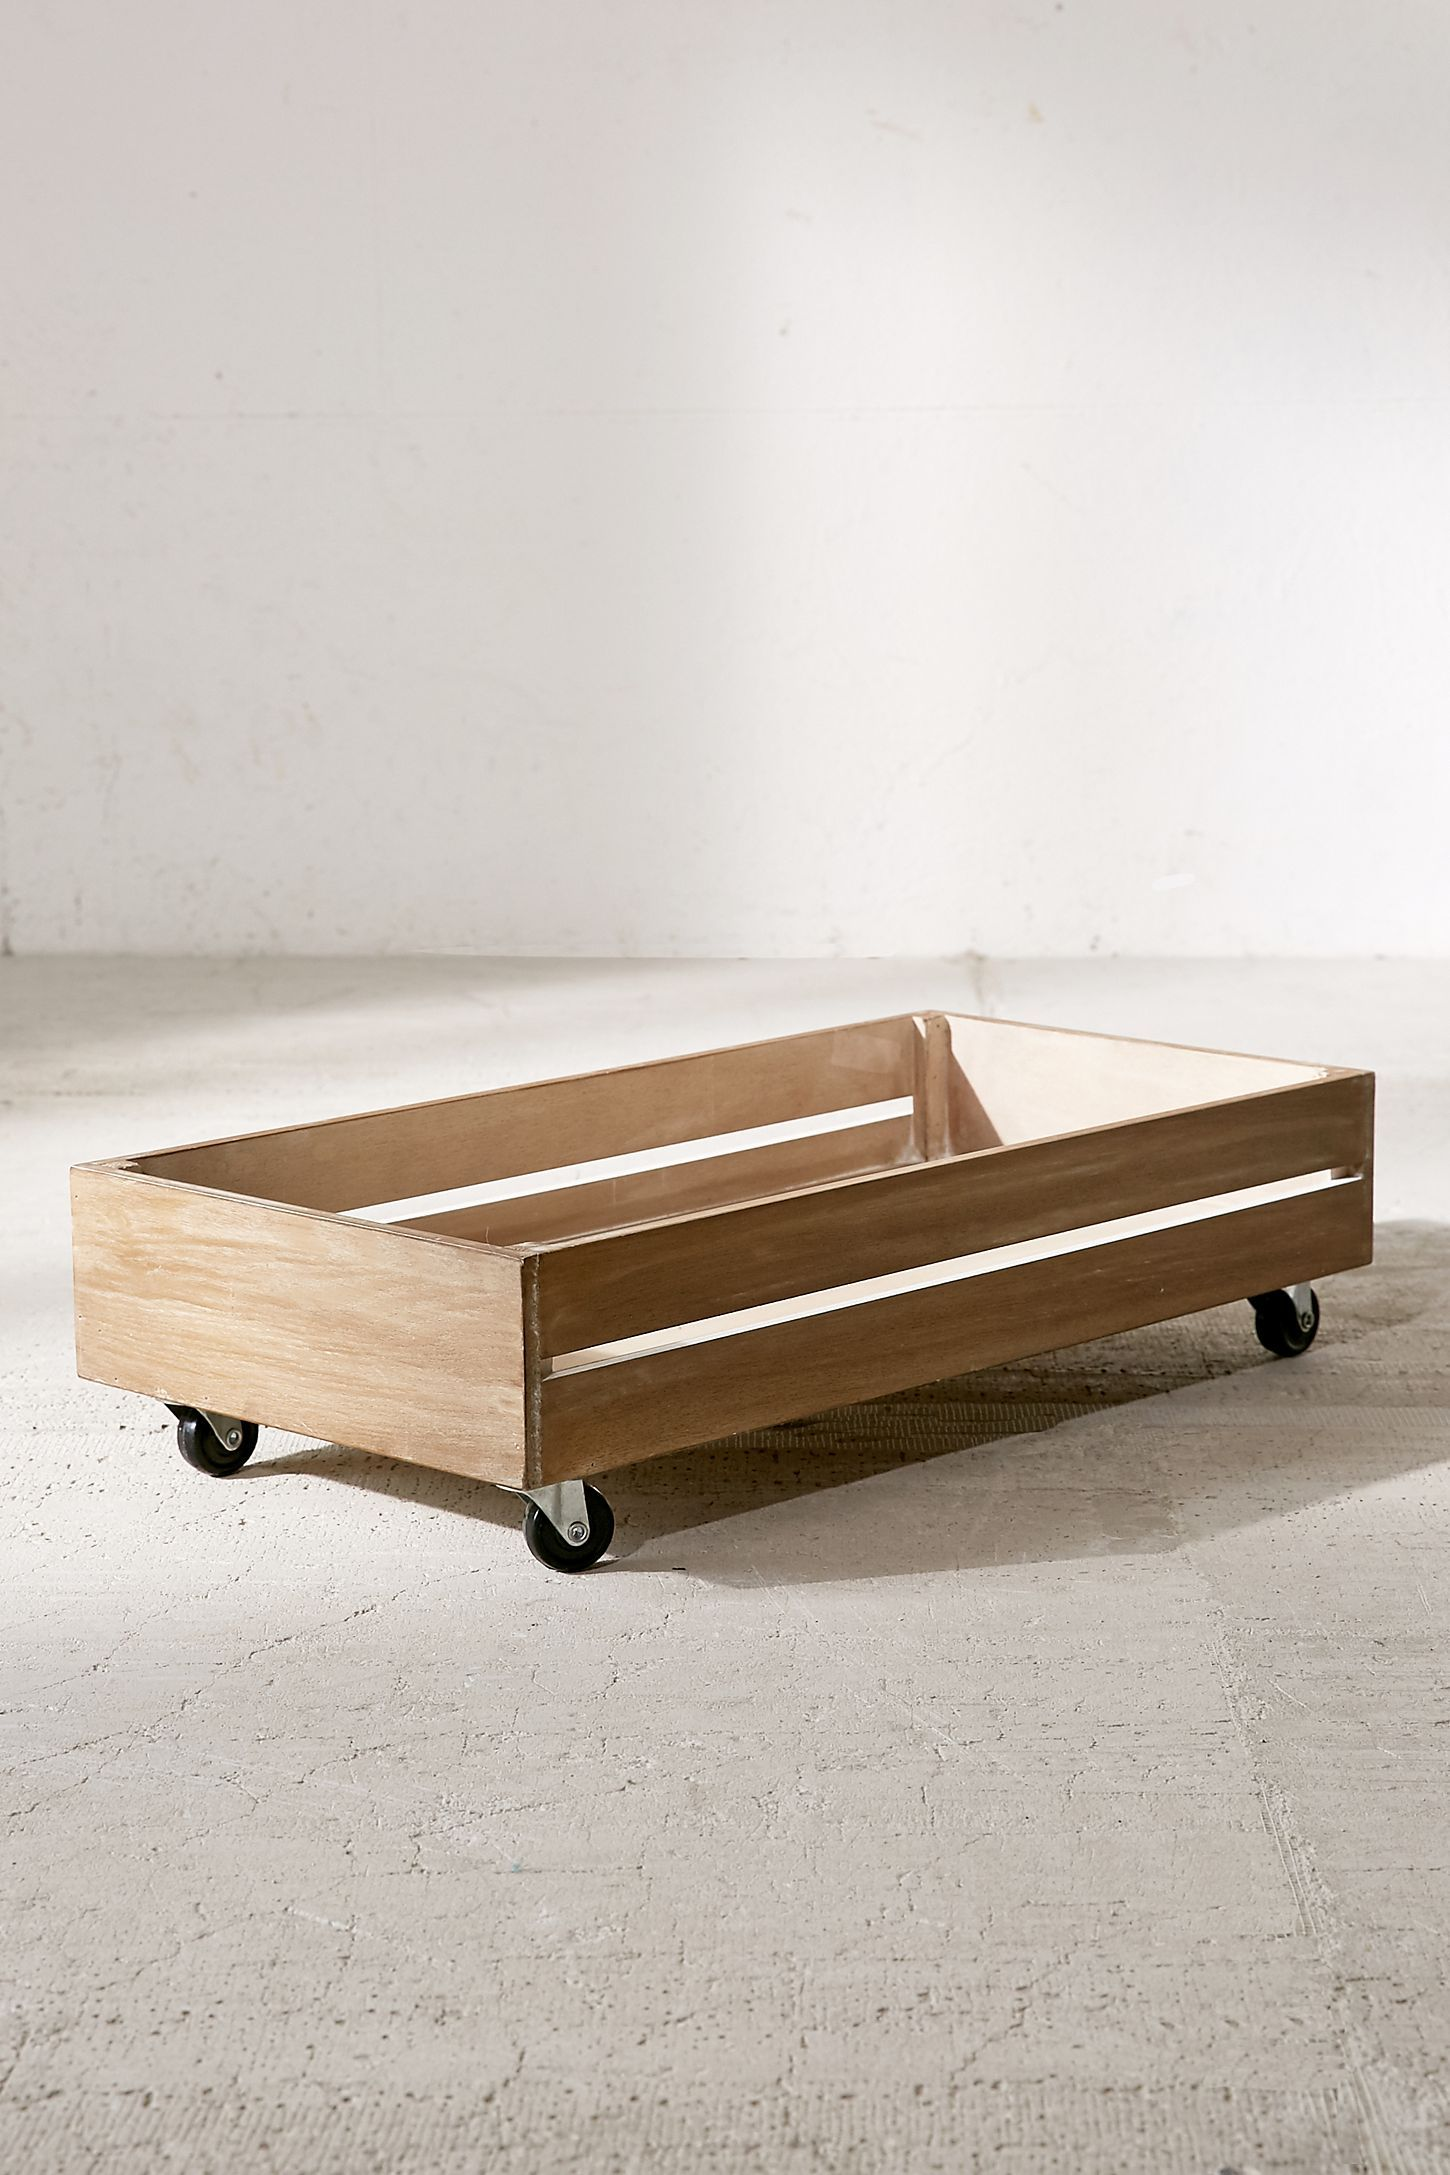 Under The Bed Rolling Wood Storage Box Wood Storage Box Wood Storage Under Bed Storage